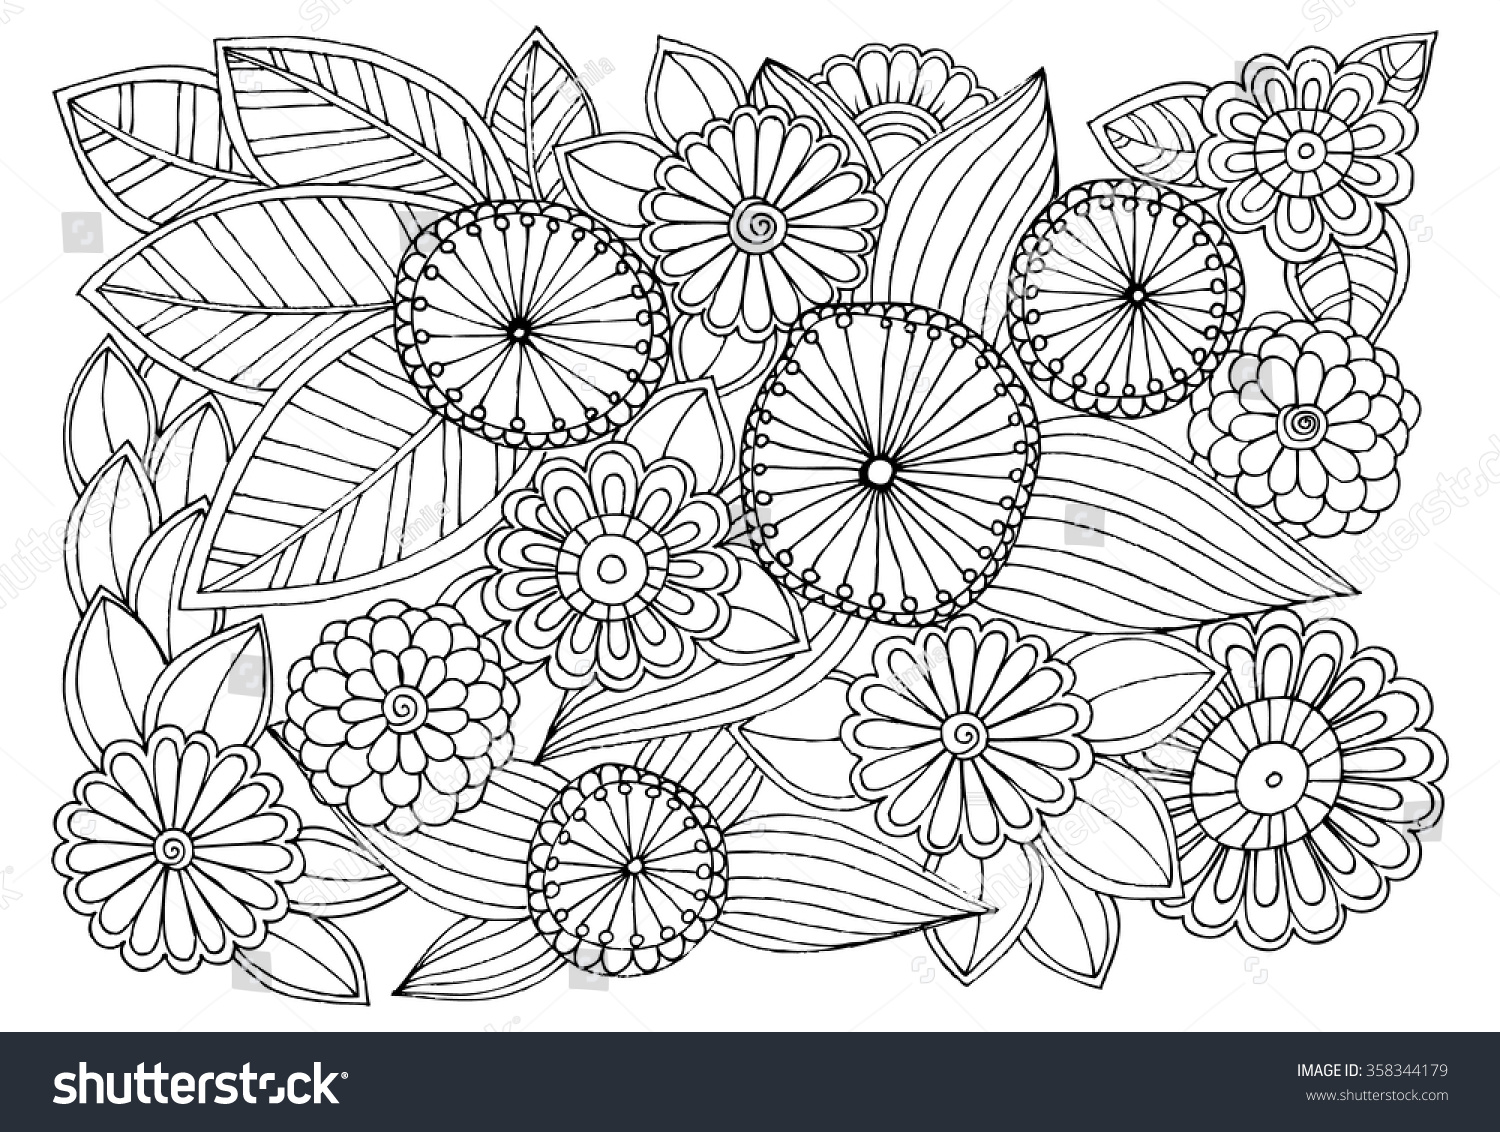 Coloring pages relaxing - Doodle Floral Pattern In Black And White Page For Coloring Book Very Interesting And